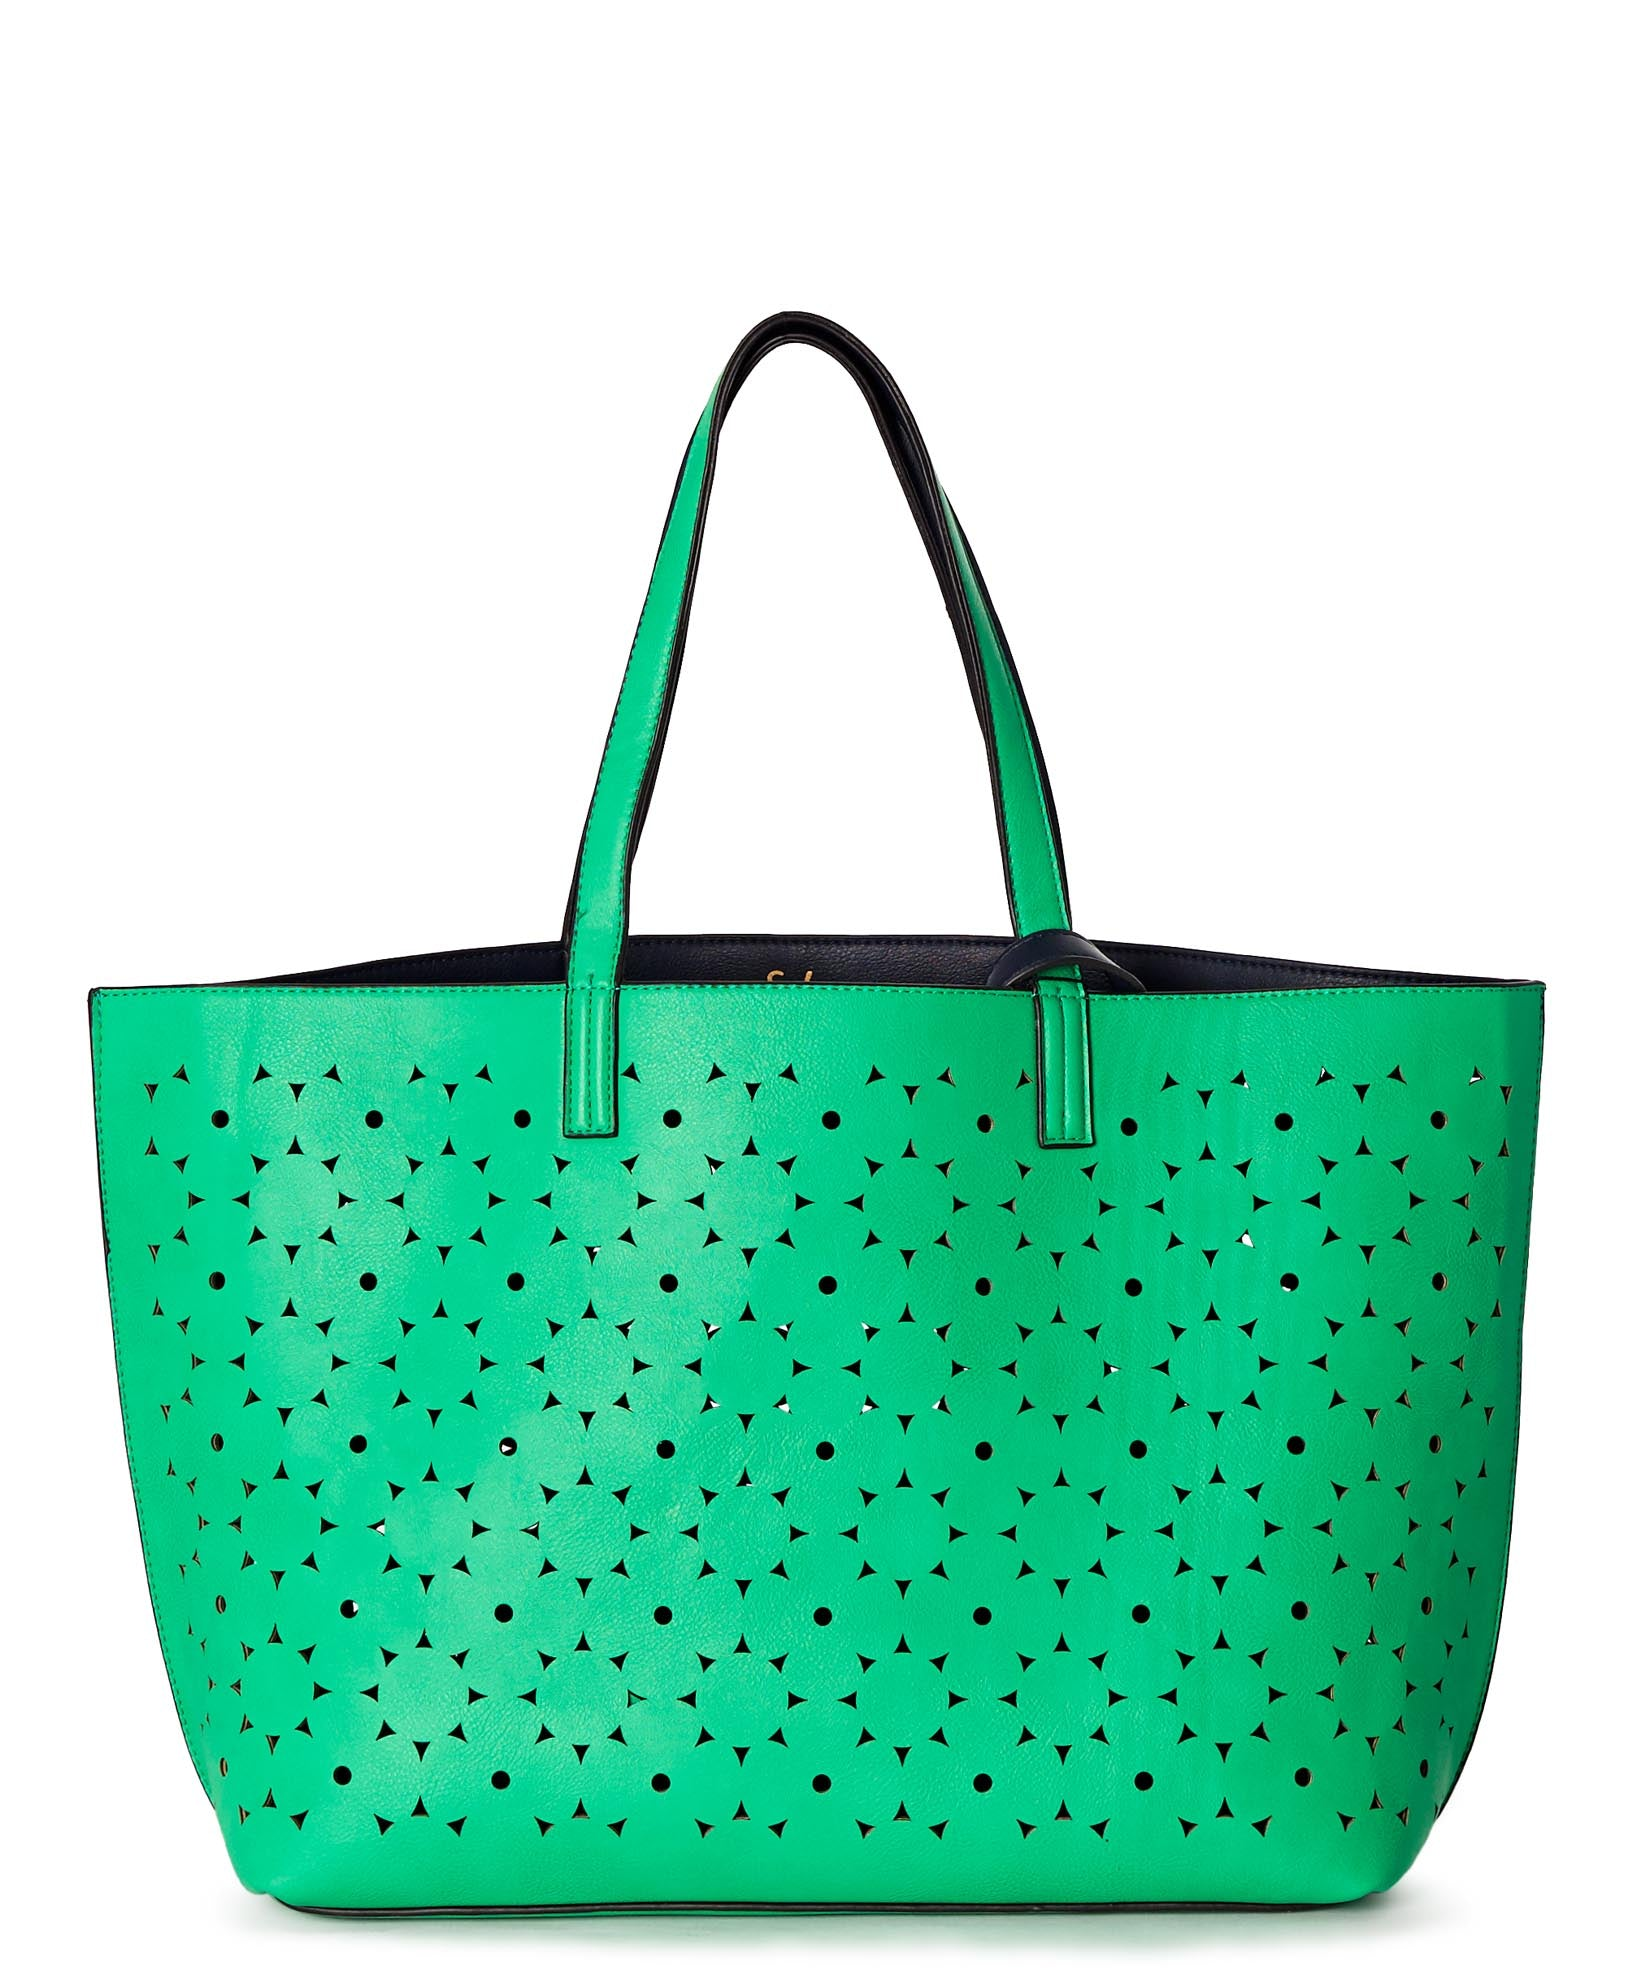 Fresh Lime/Navy - Sunflower Laser Cut Essex Tote